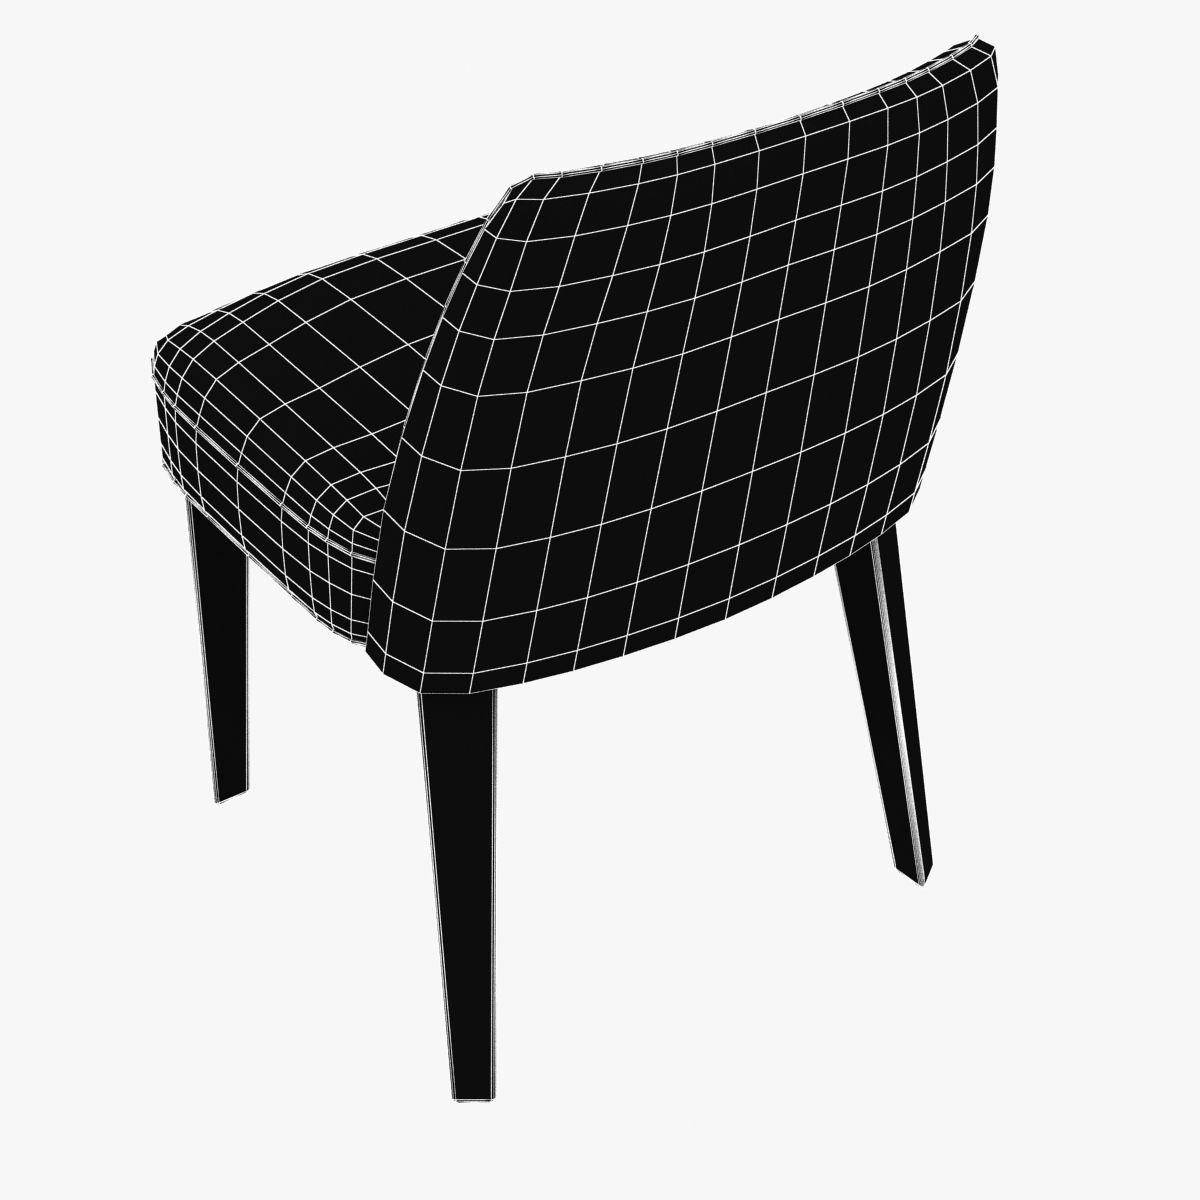 b b italia maxalto febo chair 3d model max obj 3ds fbx mtl. Black Bedroom Furniture Sets. Home Design Ideas